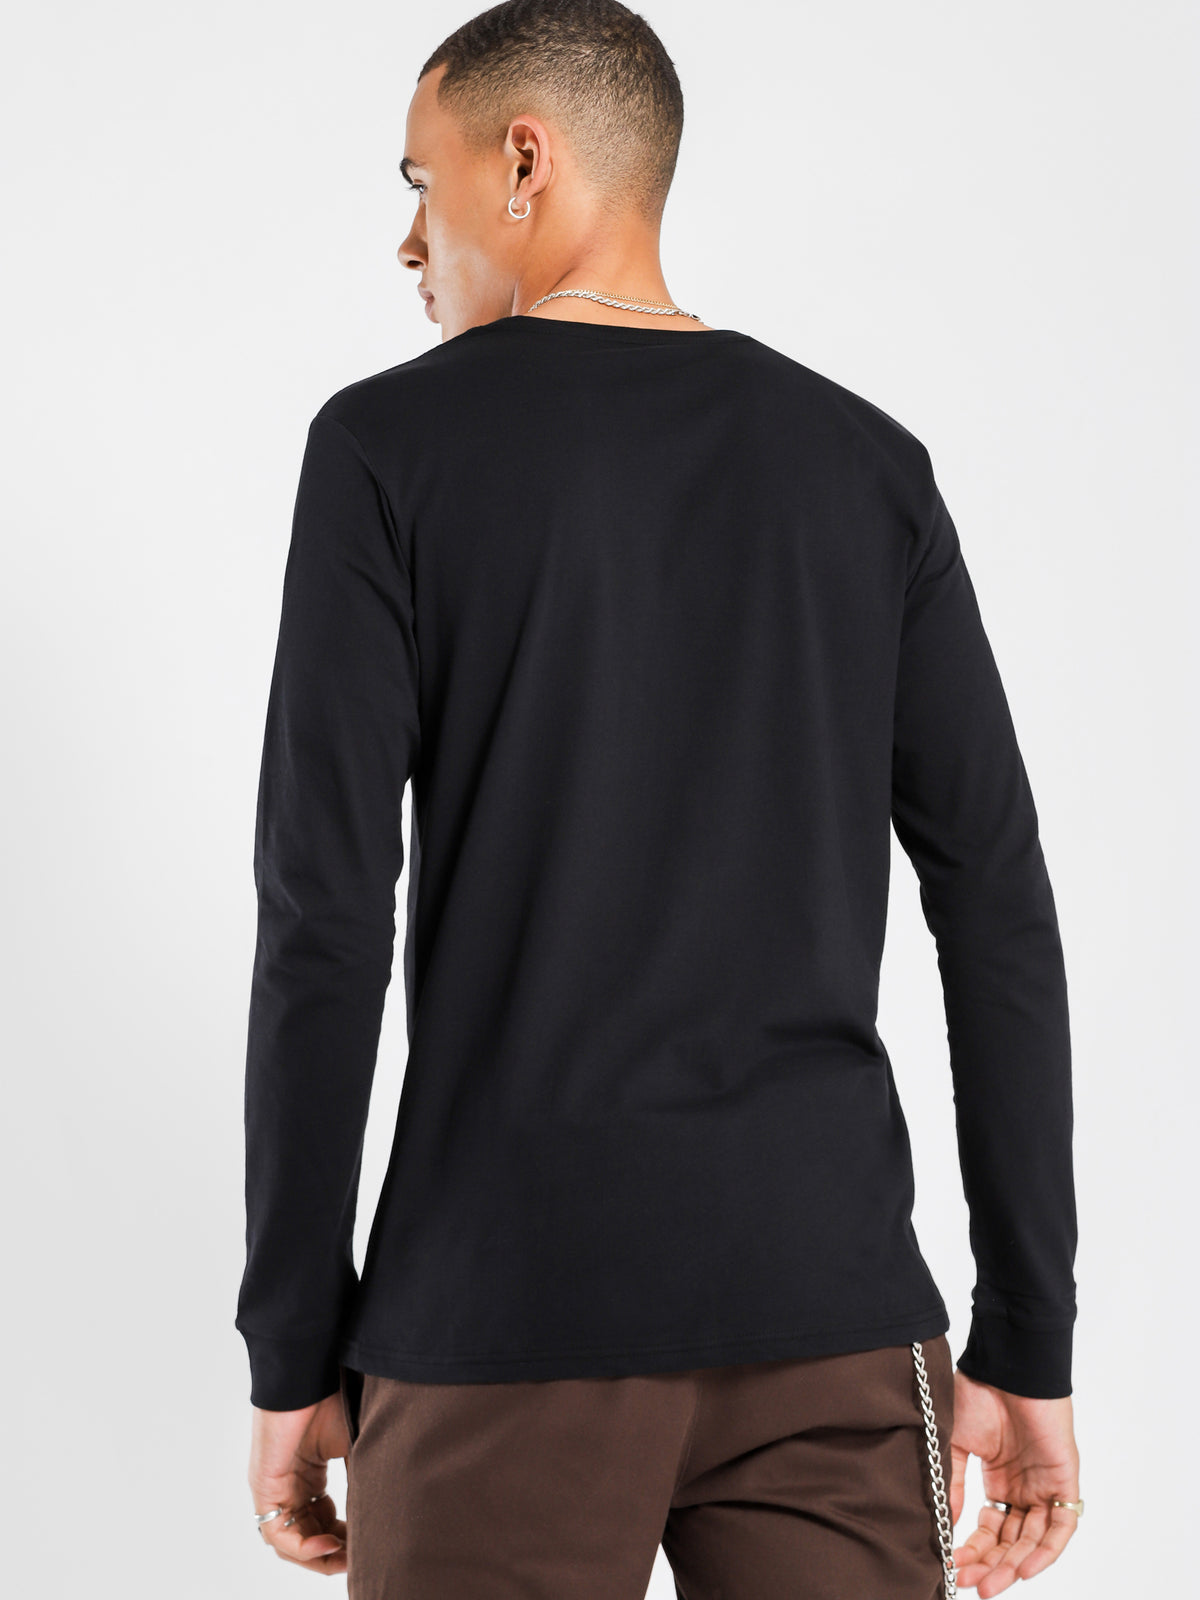 Contra Long Sleeved Shirt in Black